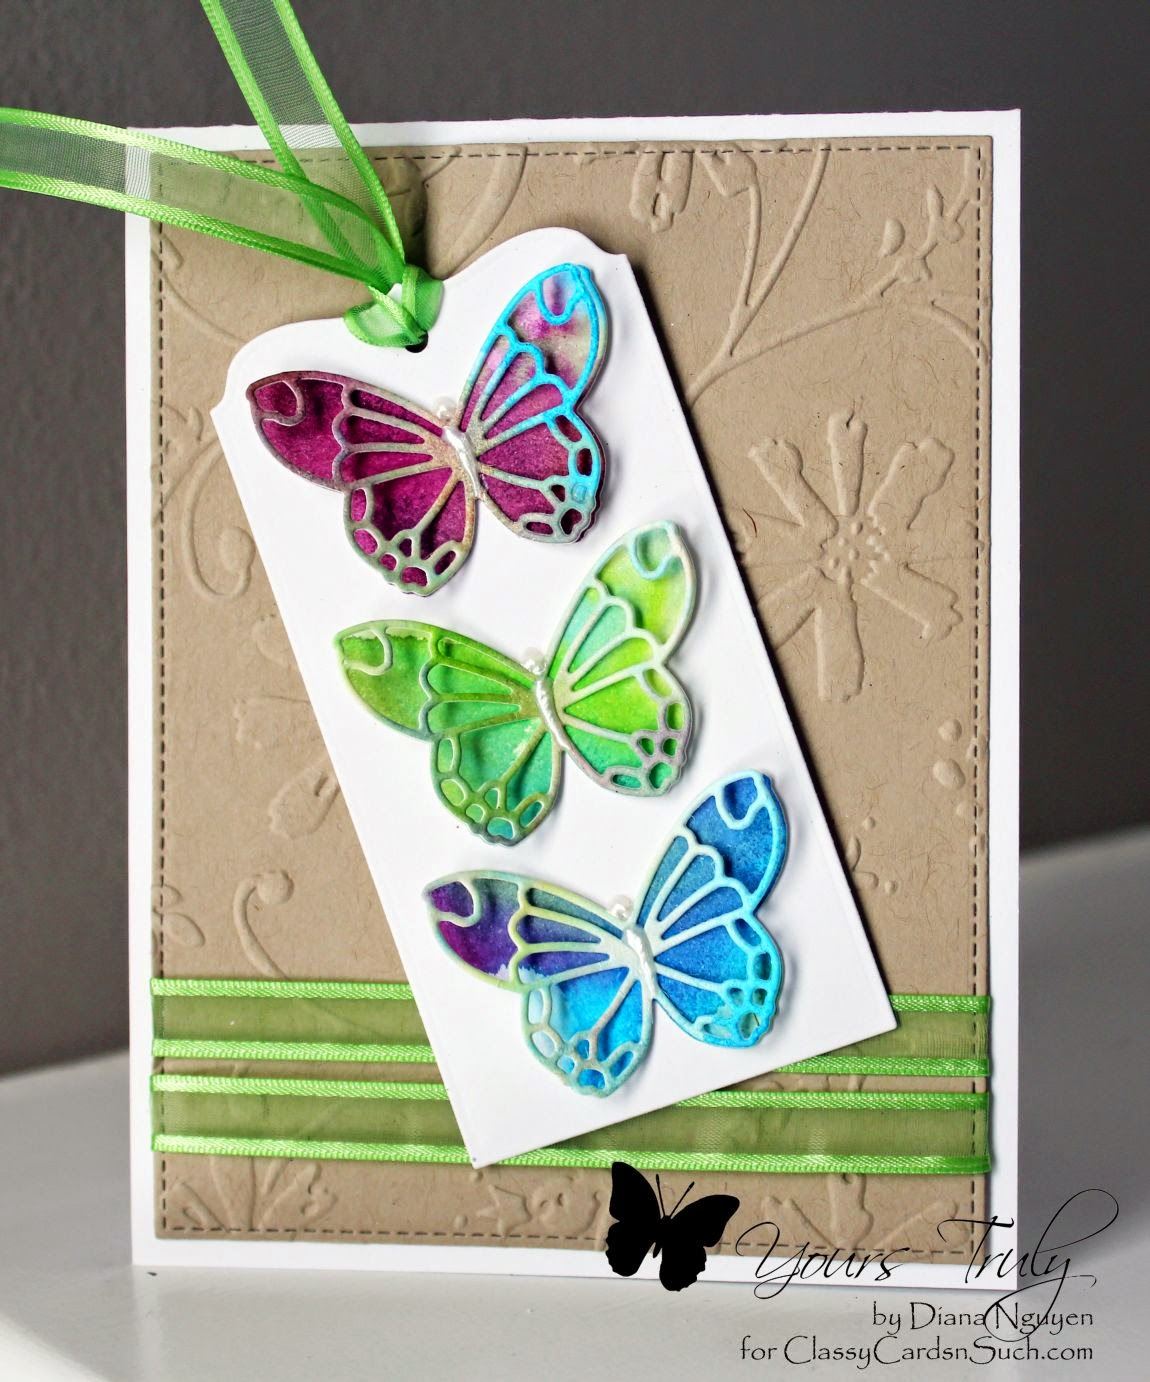 Diana Nguyen, Poppystamps, butterflies, Stylized flowers, embossing folder